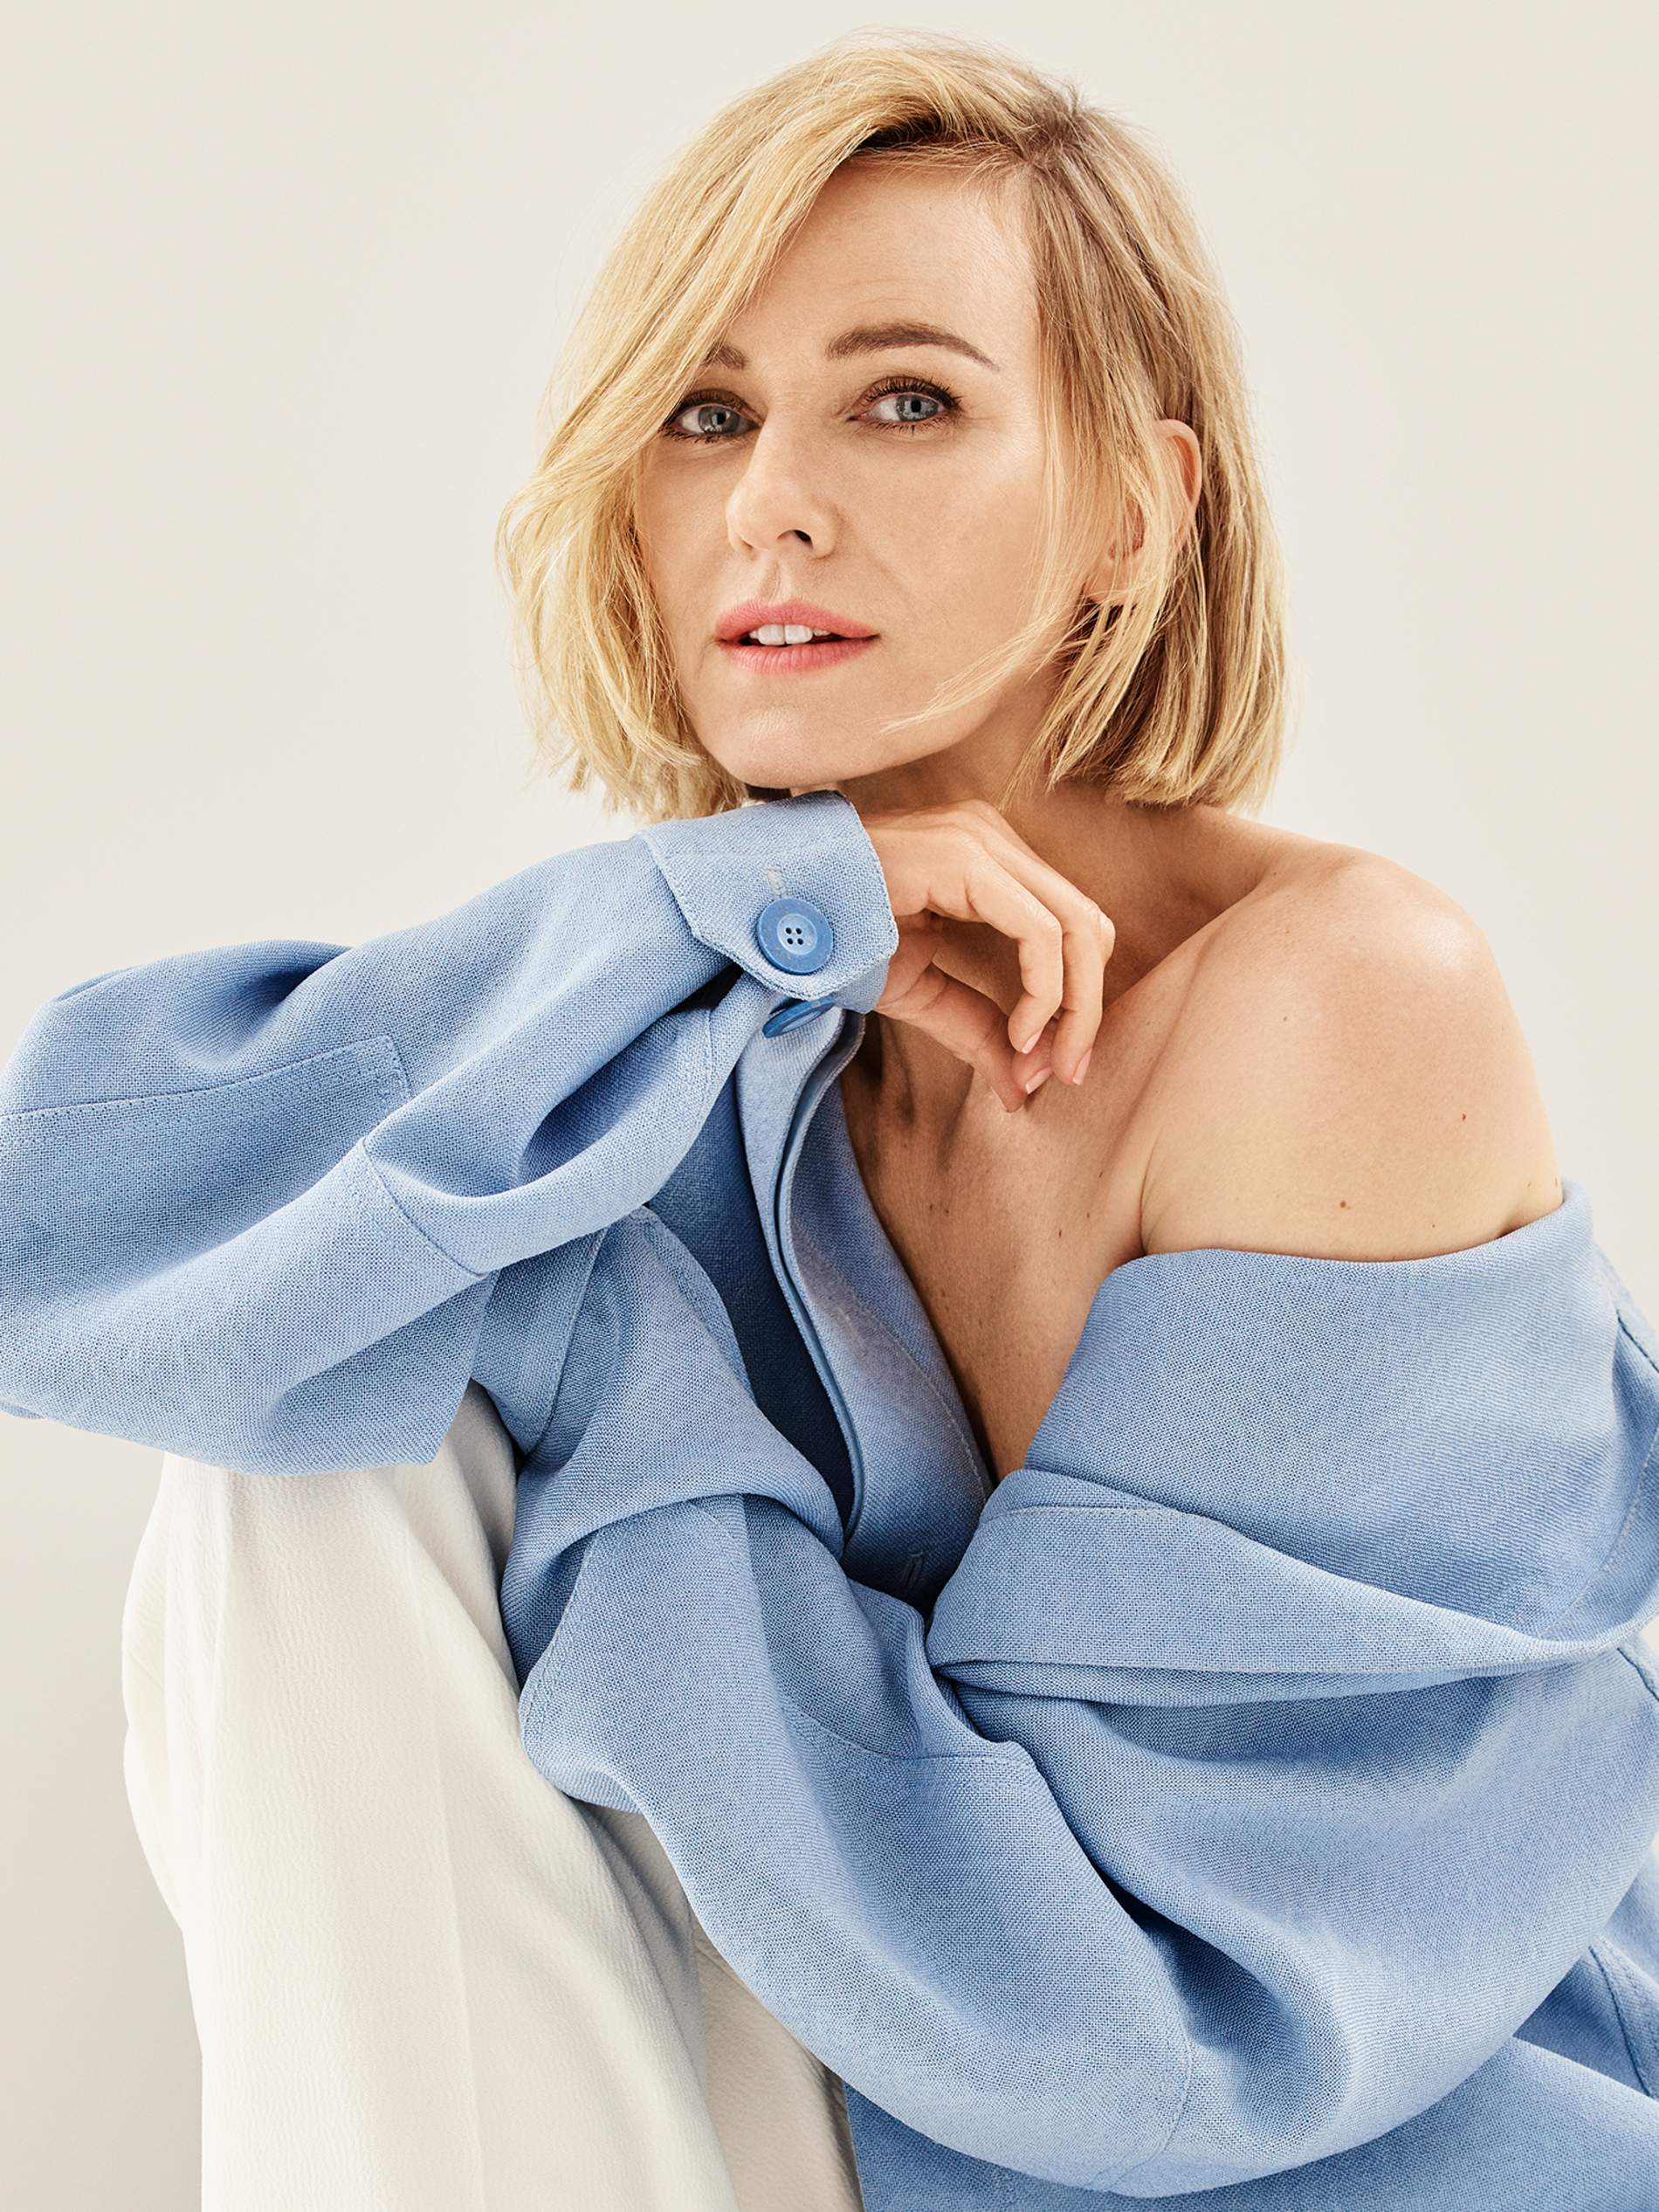 Shirt Jacquemus; pants Proenza Schouler. Naomi Watts by Jason Kibler for Porter Edit Aug. 2, 2019